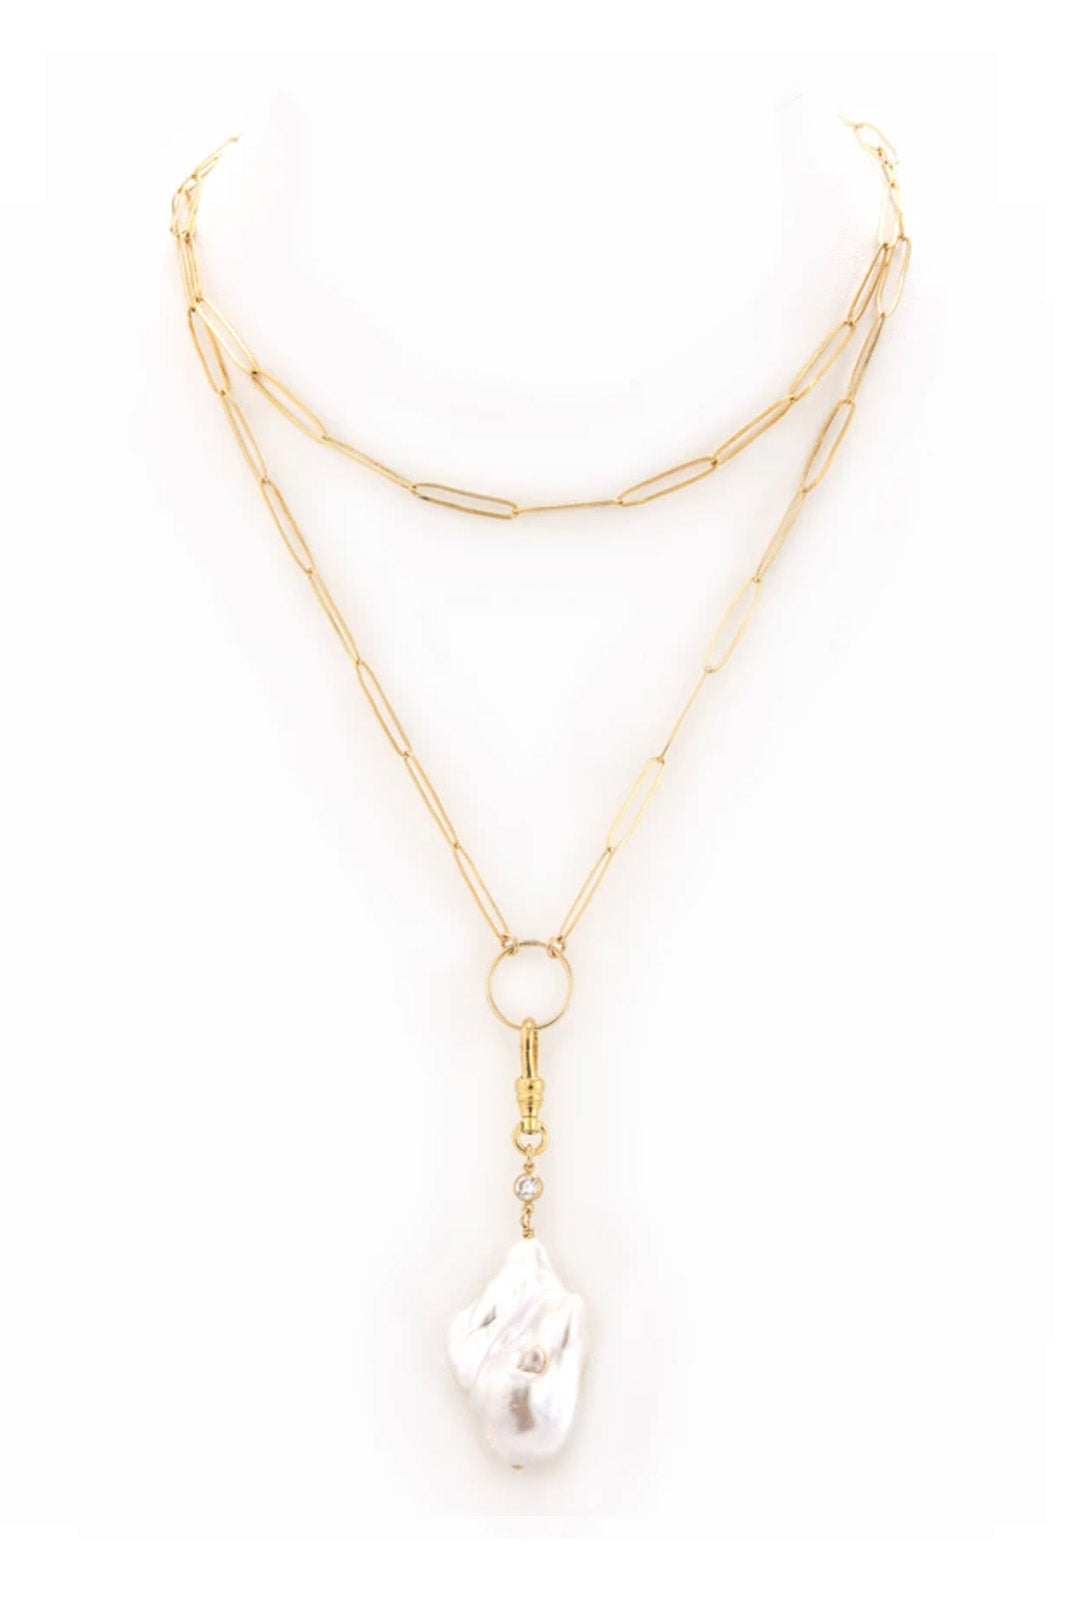 Taylor and Tessier Gardenia Necklace